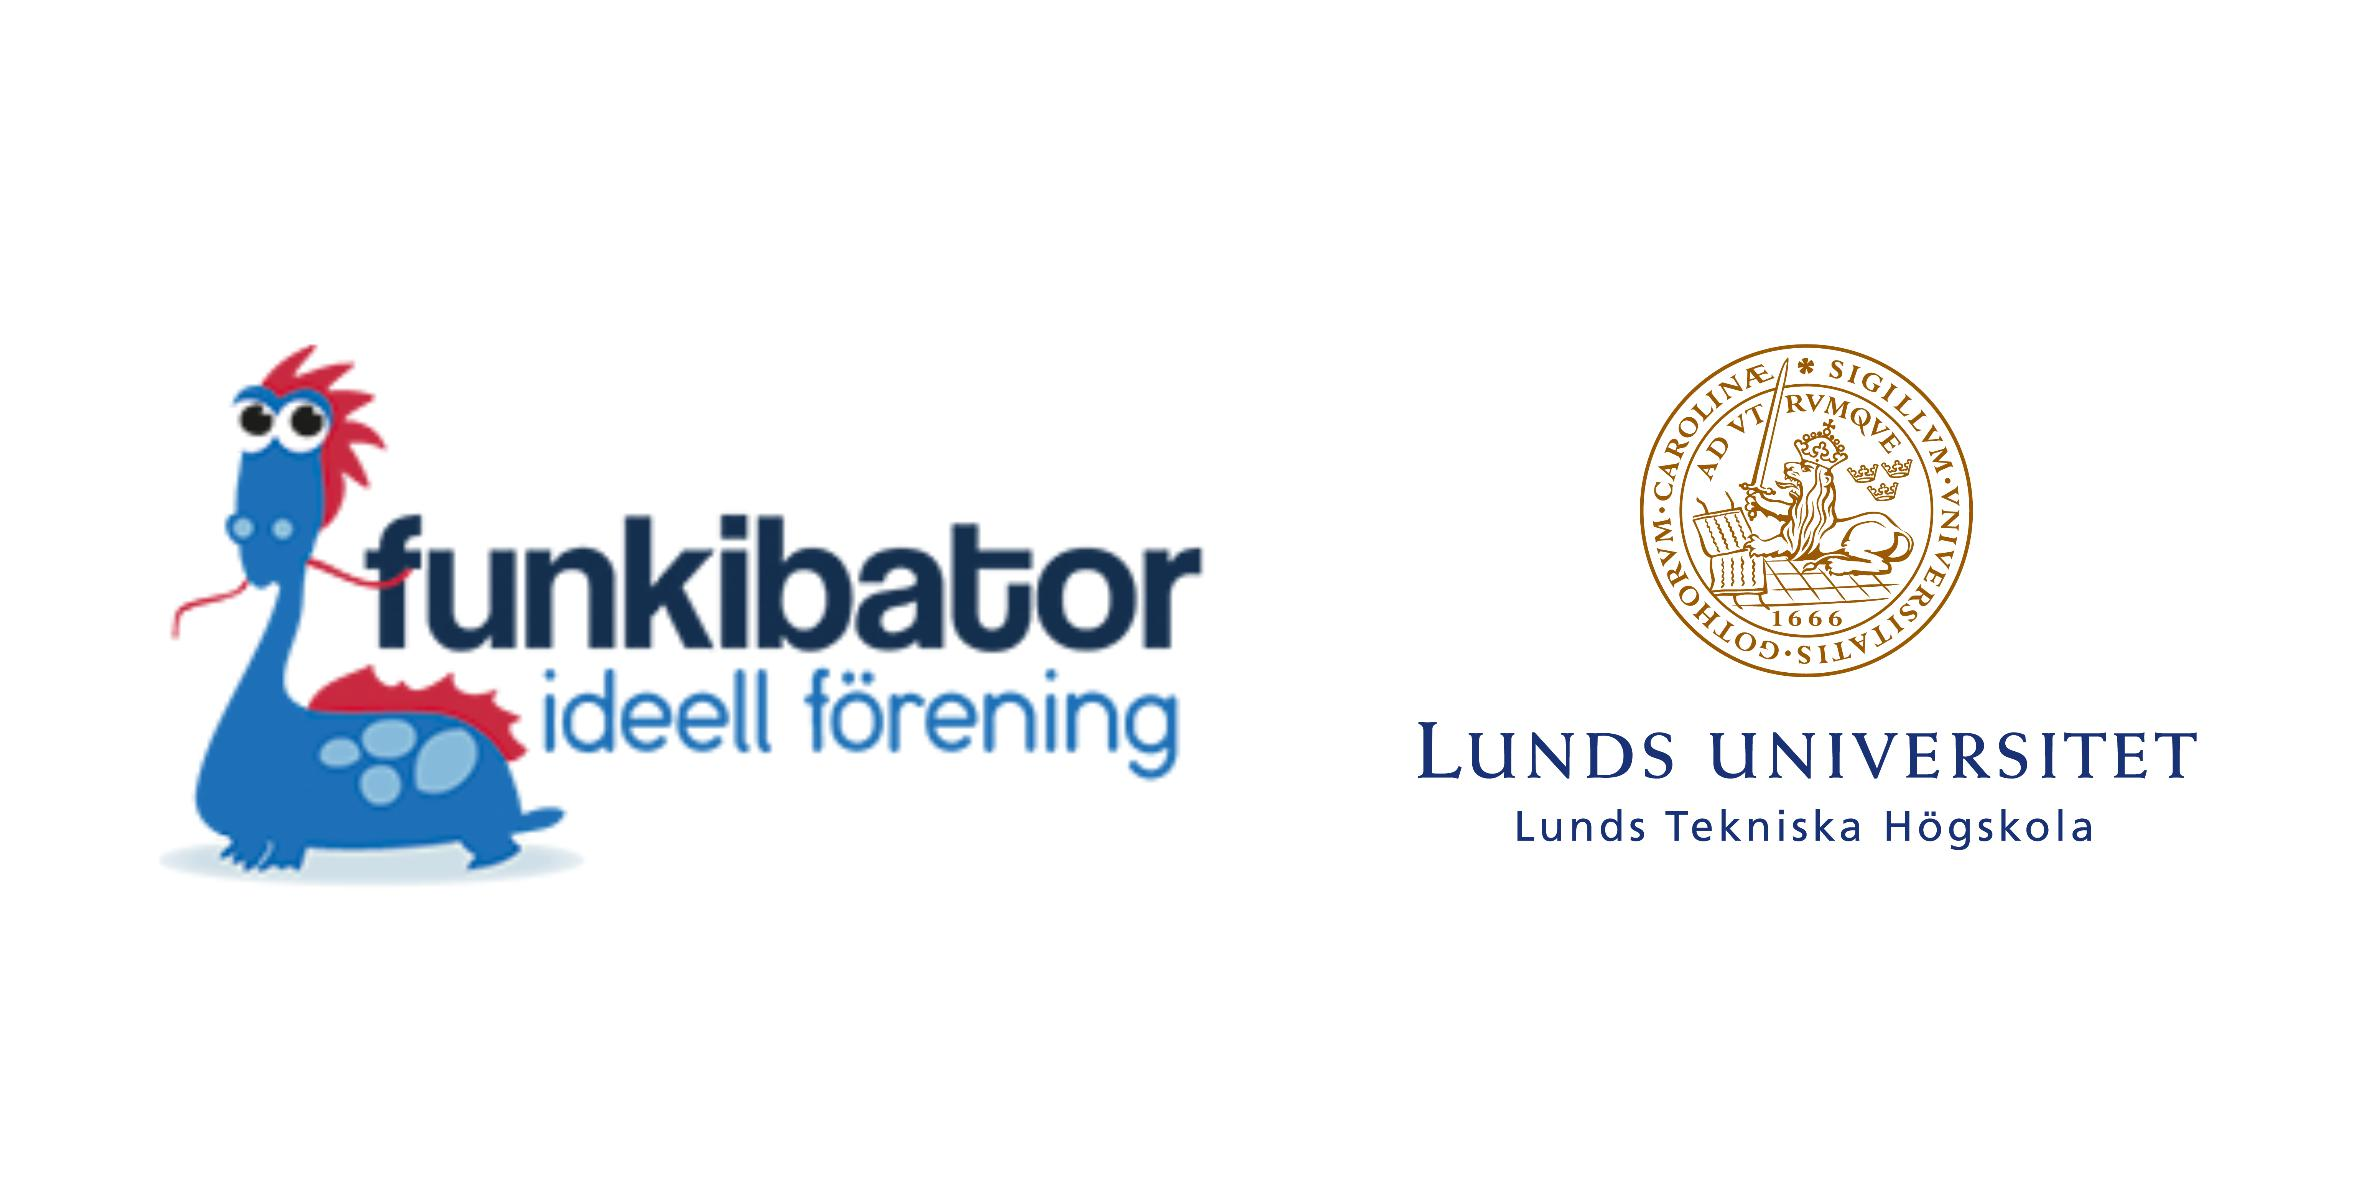 Logotyper Funkibator och Lunds Universitet